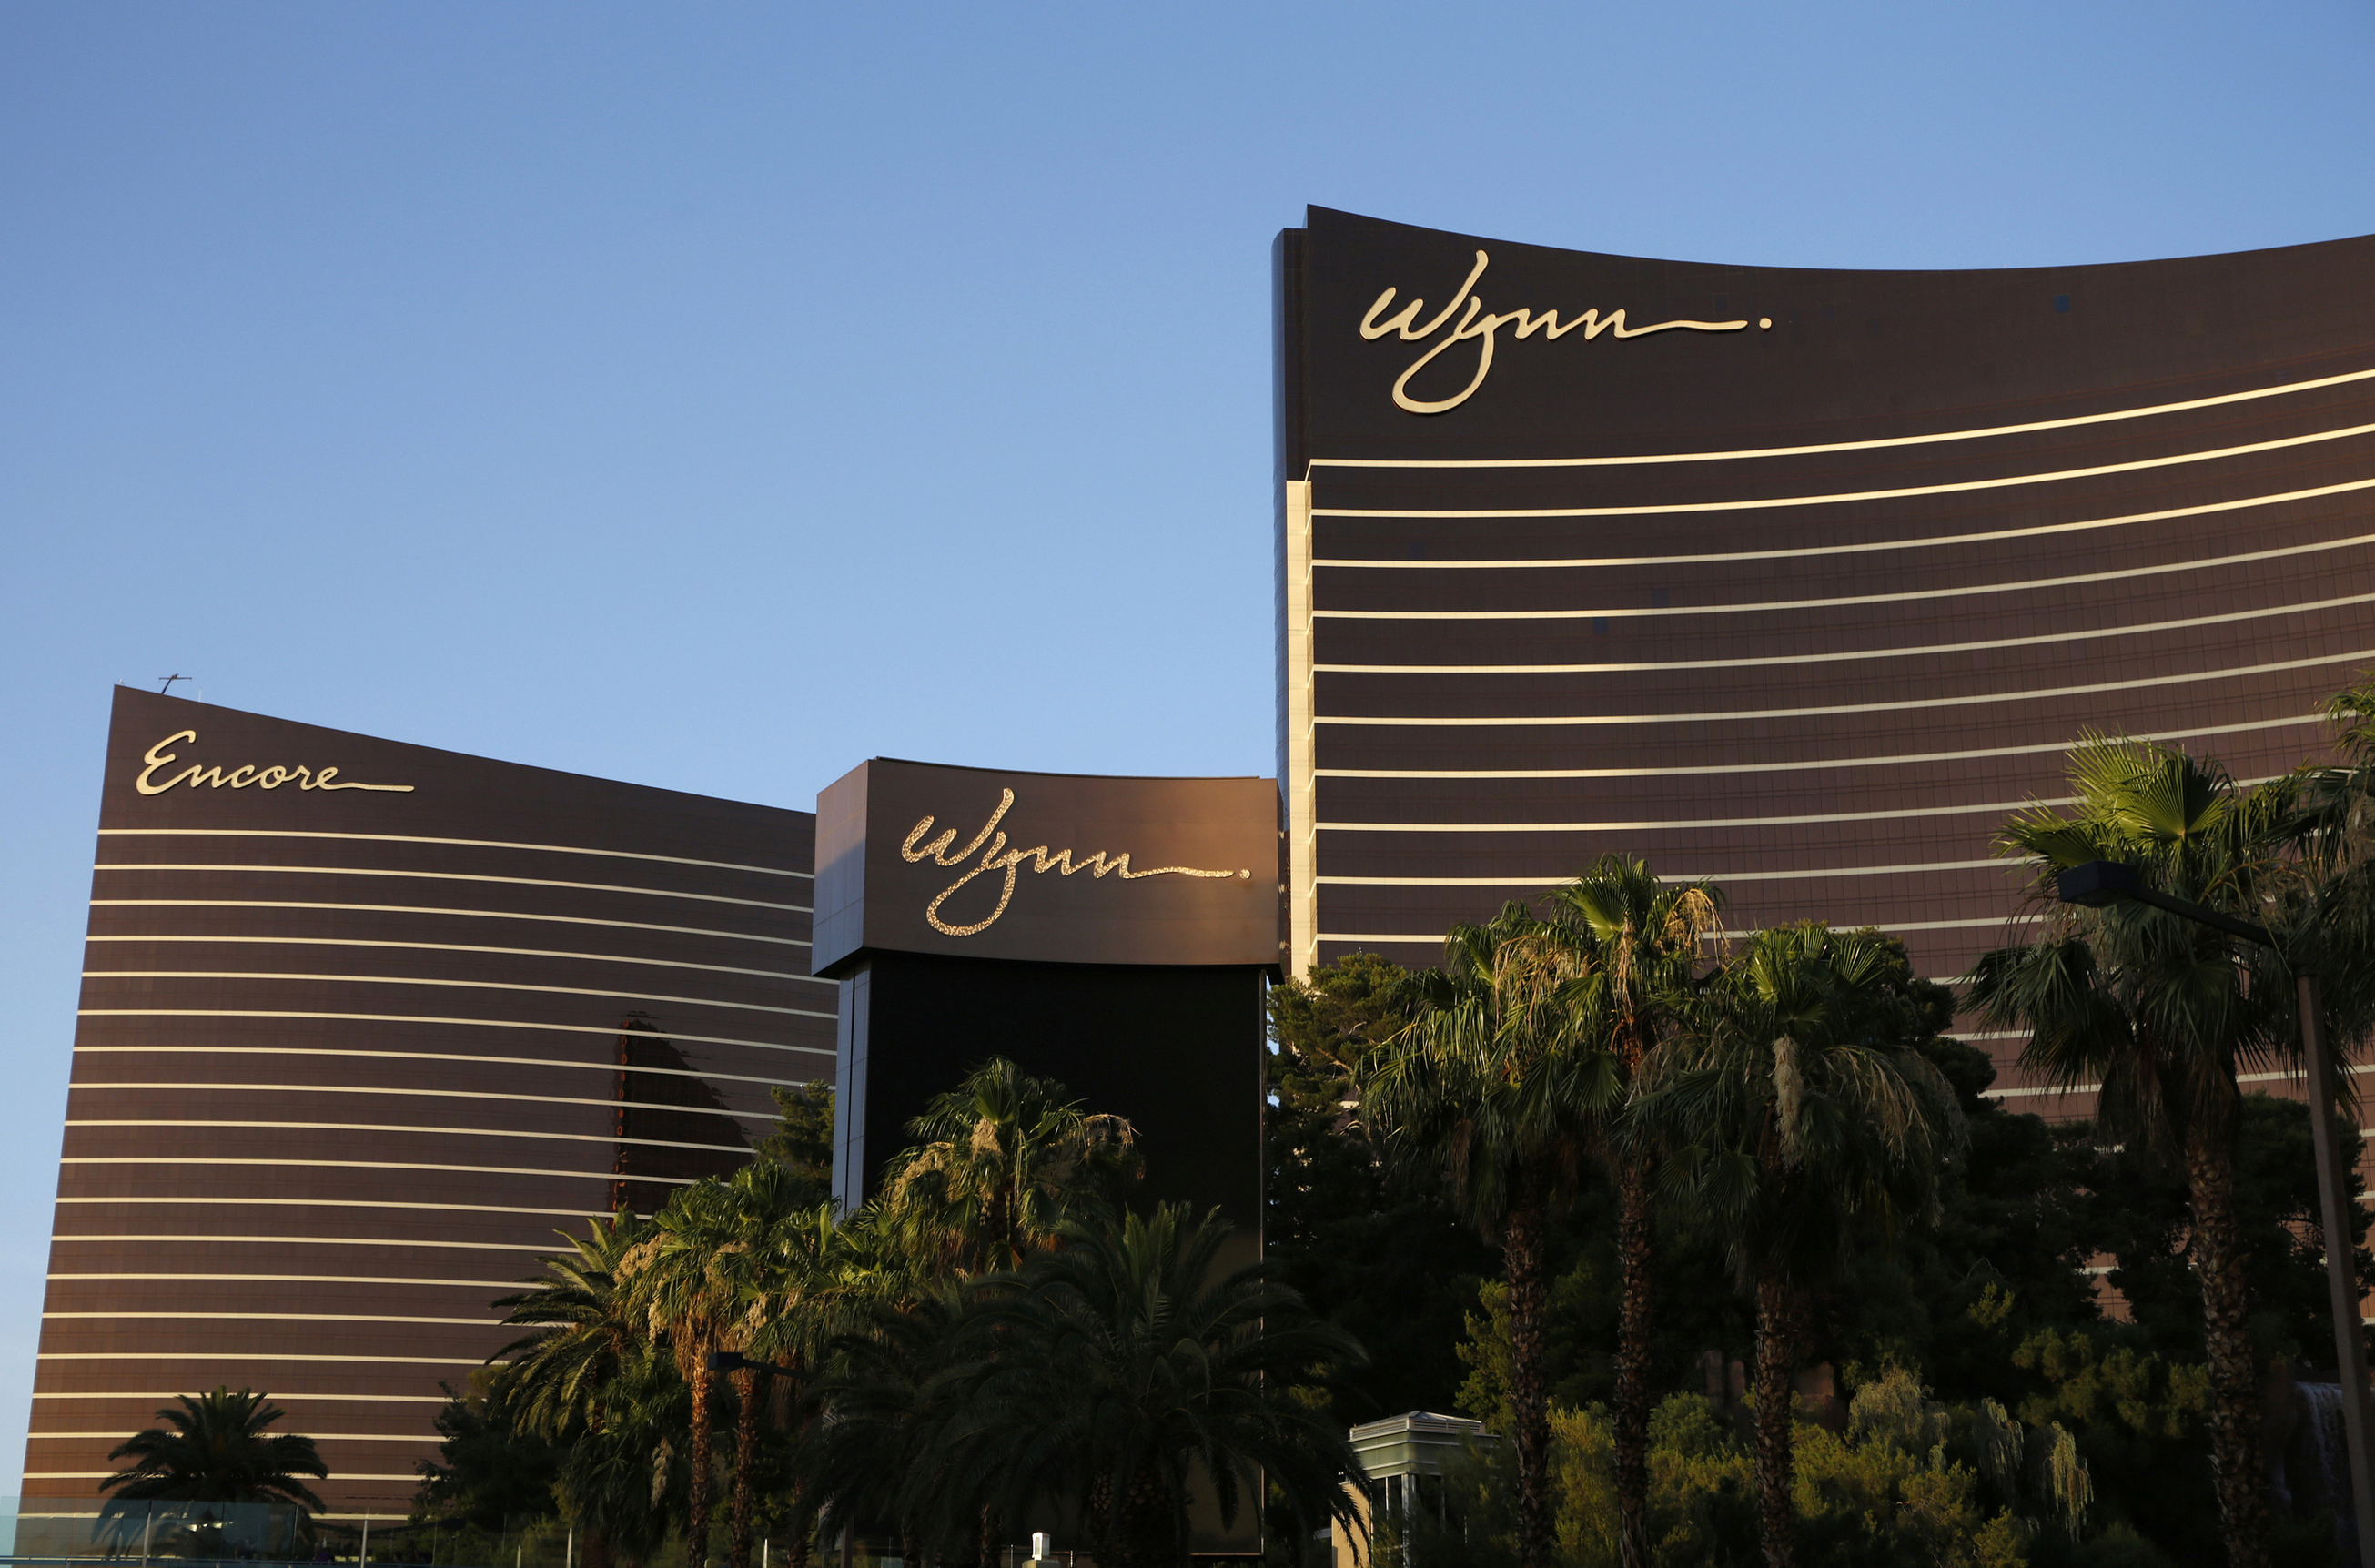 This June 17, 2014, file photo shows the Wynn Las Vegas and Encore resorts in Las Vegas, Nevada.